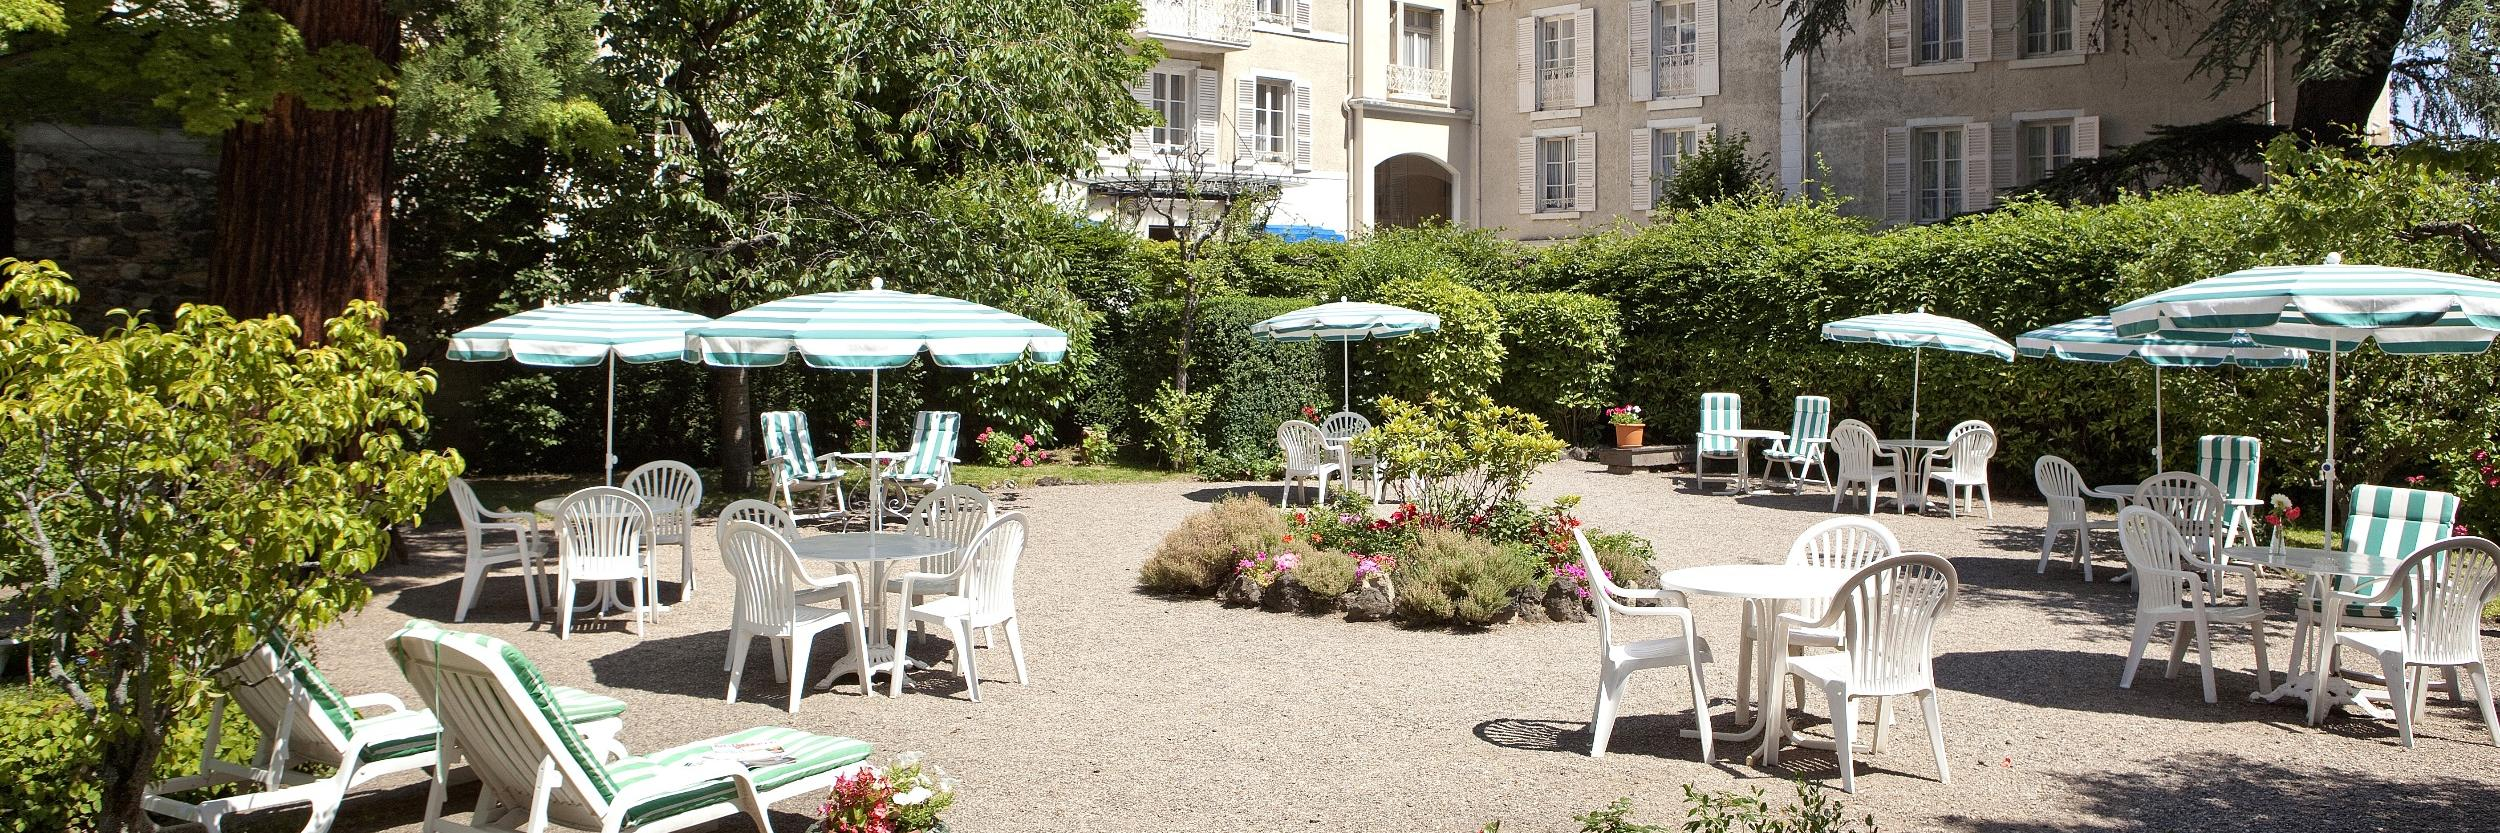 Logis Hôtel Royal Saint Mart -